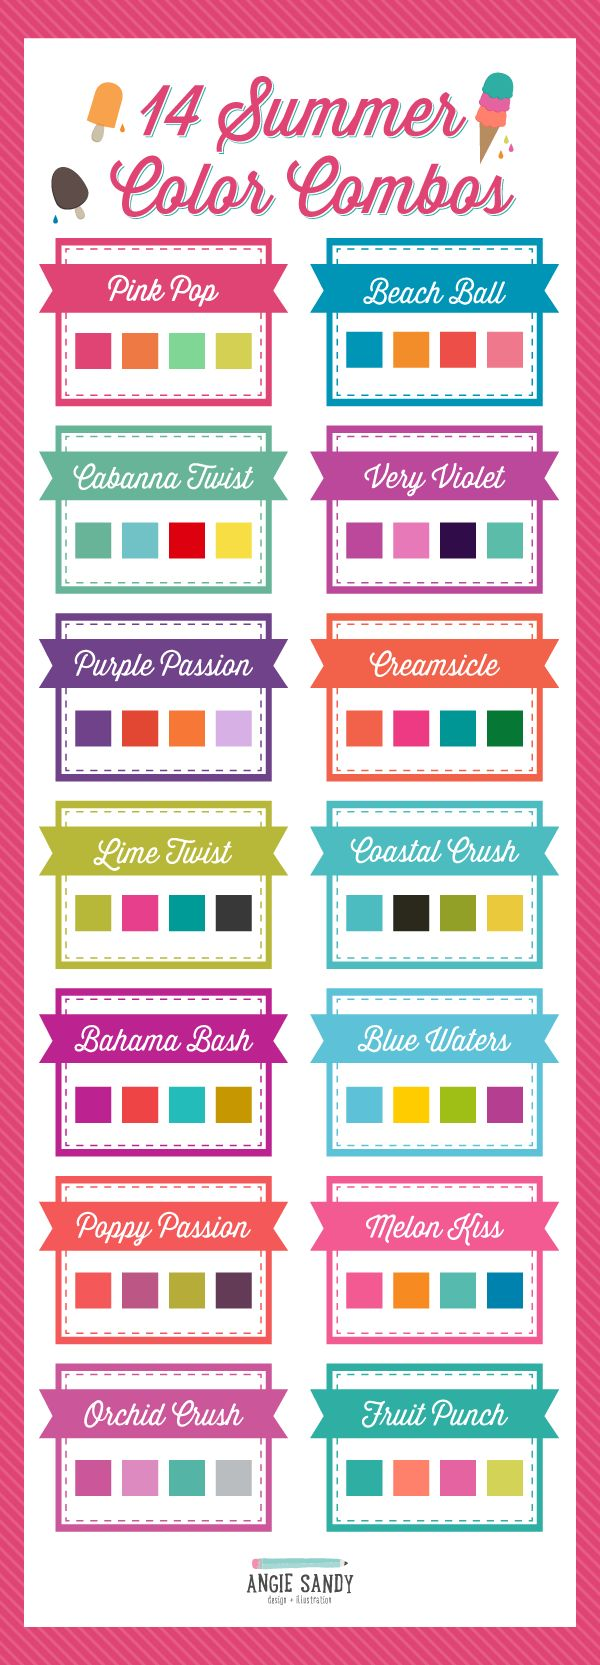 14 Bright Summer Color Palettes by Angie Sandy #colorpalette #colorcrush / サマーカラー カラーパレット